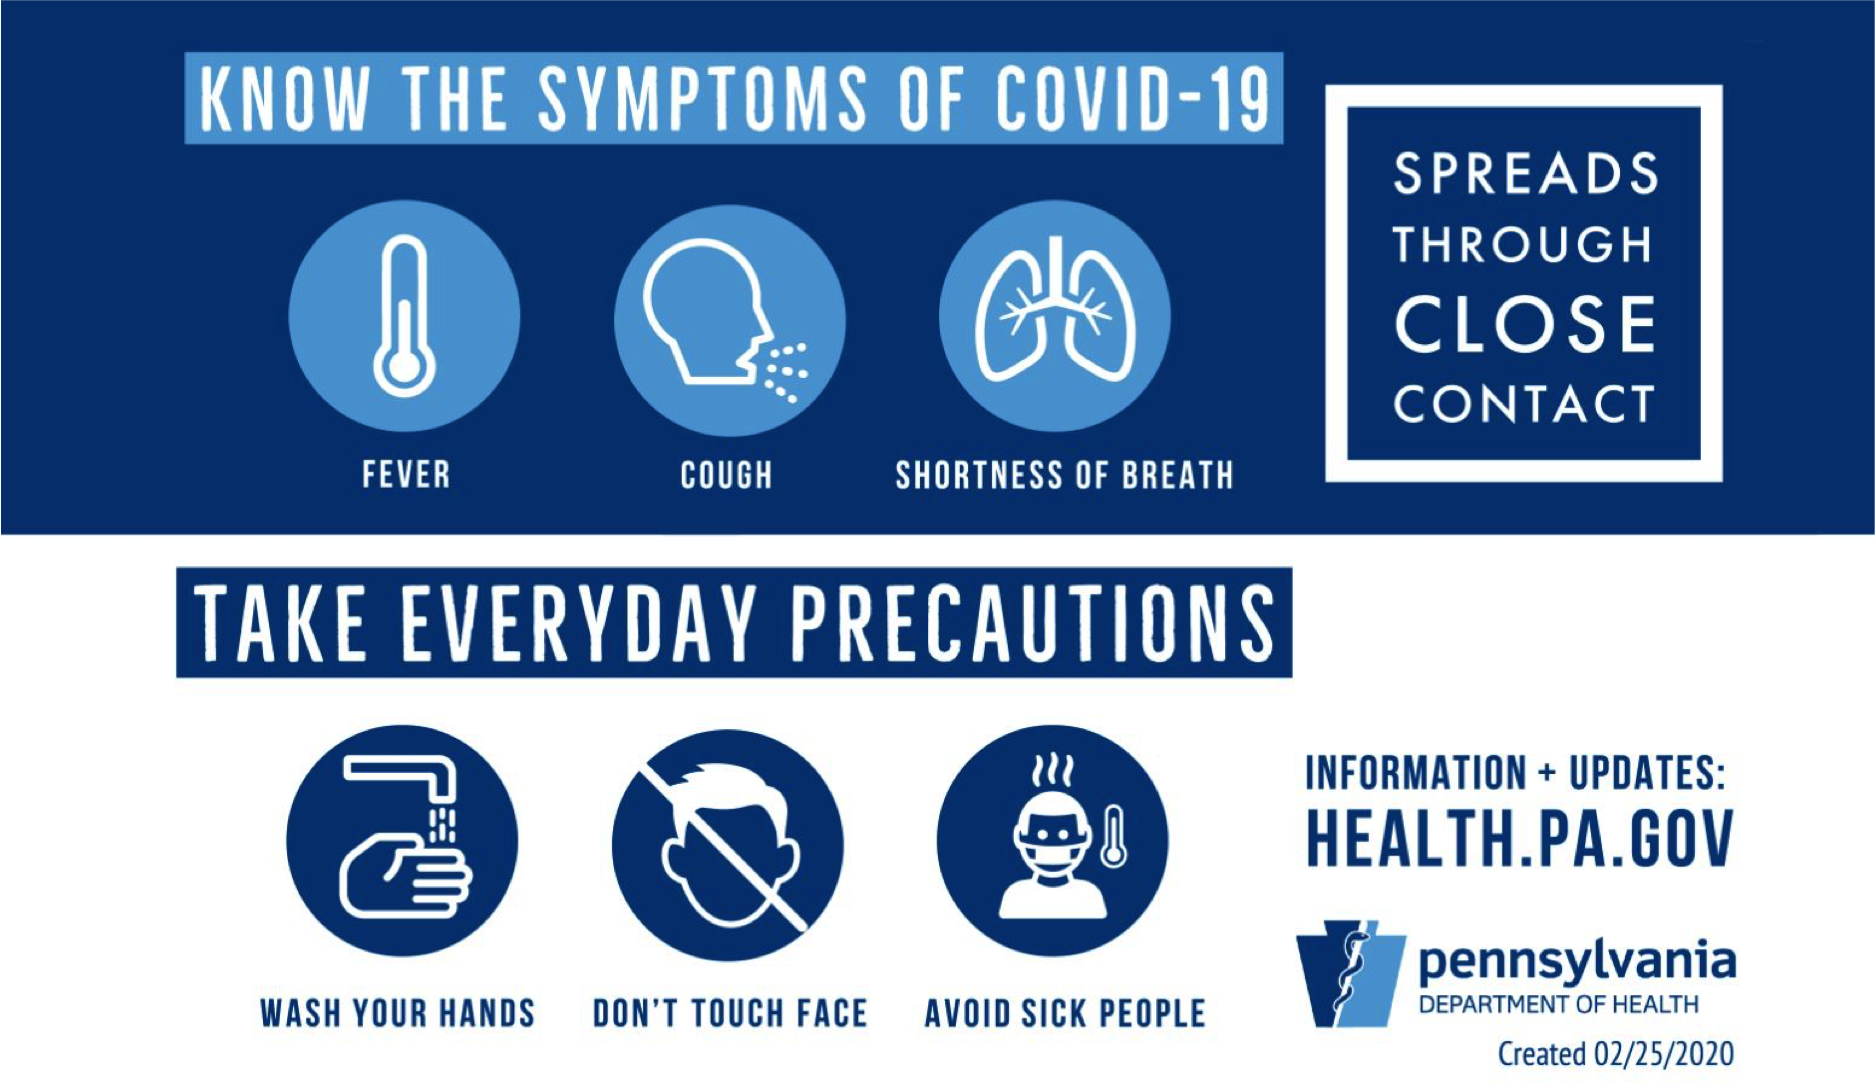 A graphic with the symptoms of COVID-19(fever, cough, shortness of breath) and recommended precautions (wash your hands, don't touch face, avoid sick people)